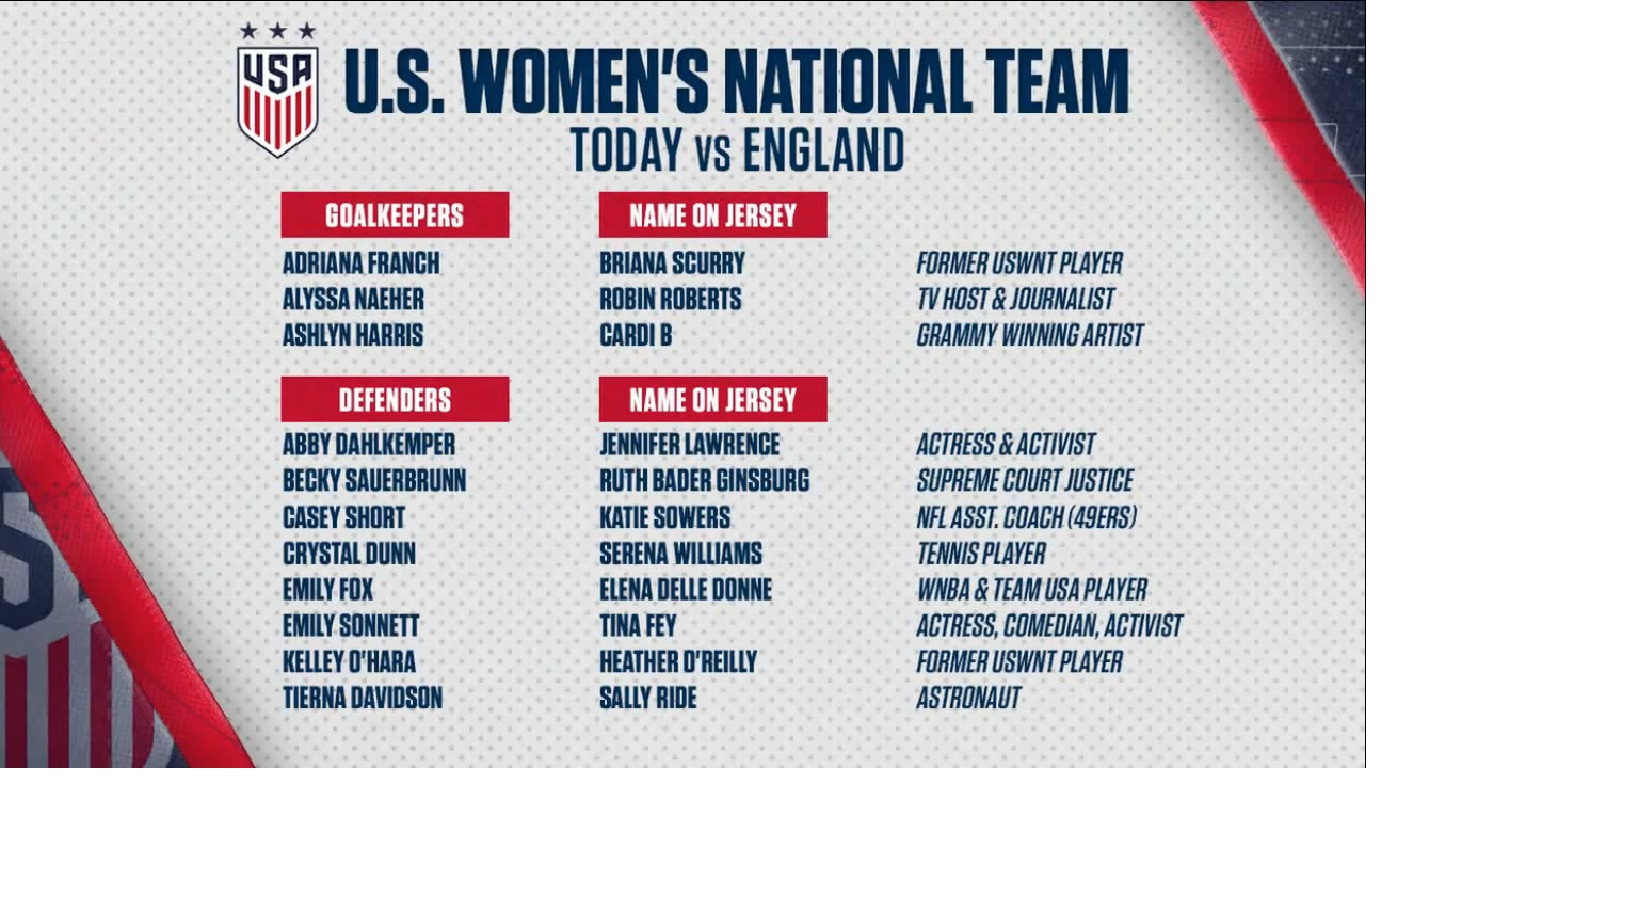 a28b3dc9d Screen capture from video of the US women s soccer team line up and the  names of